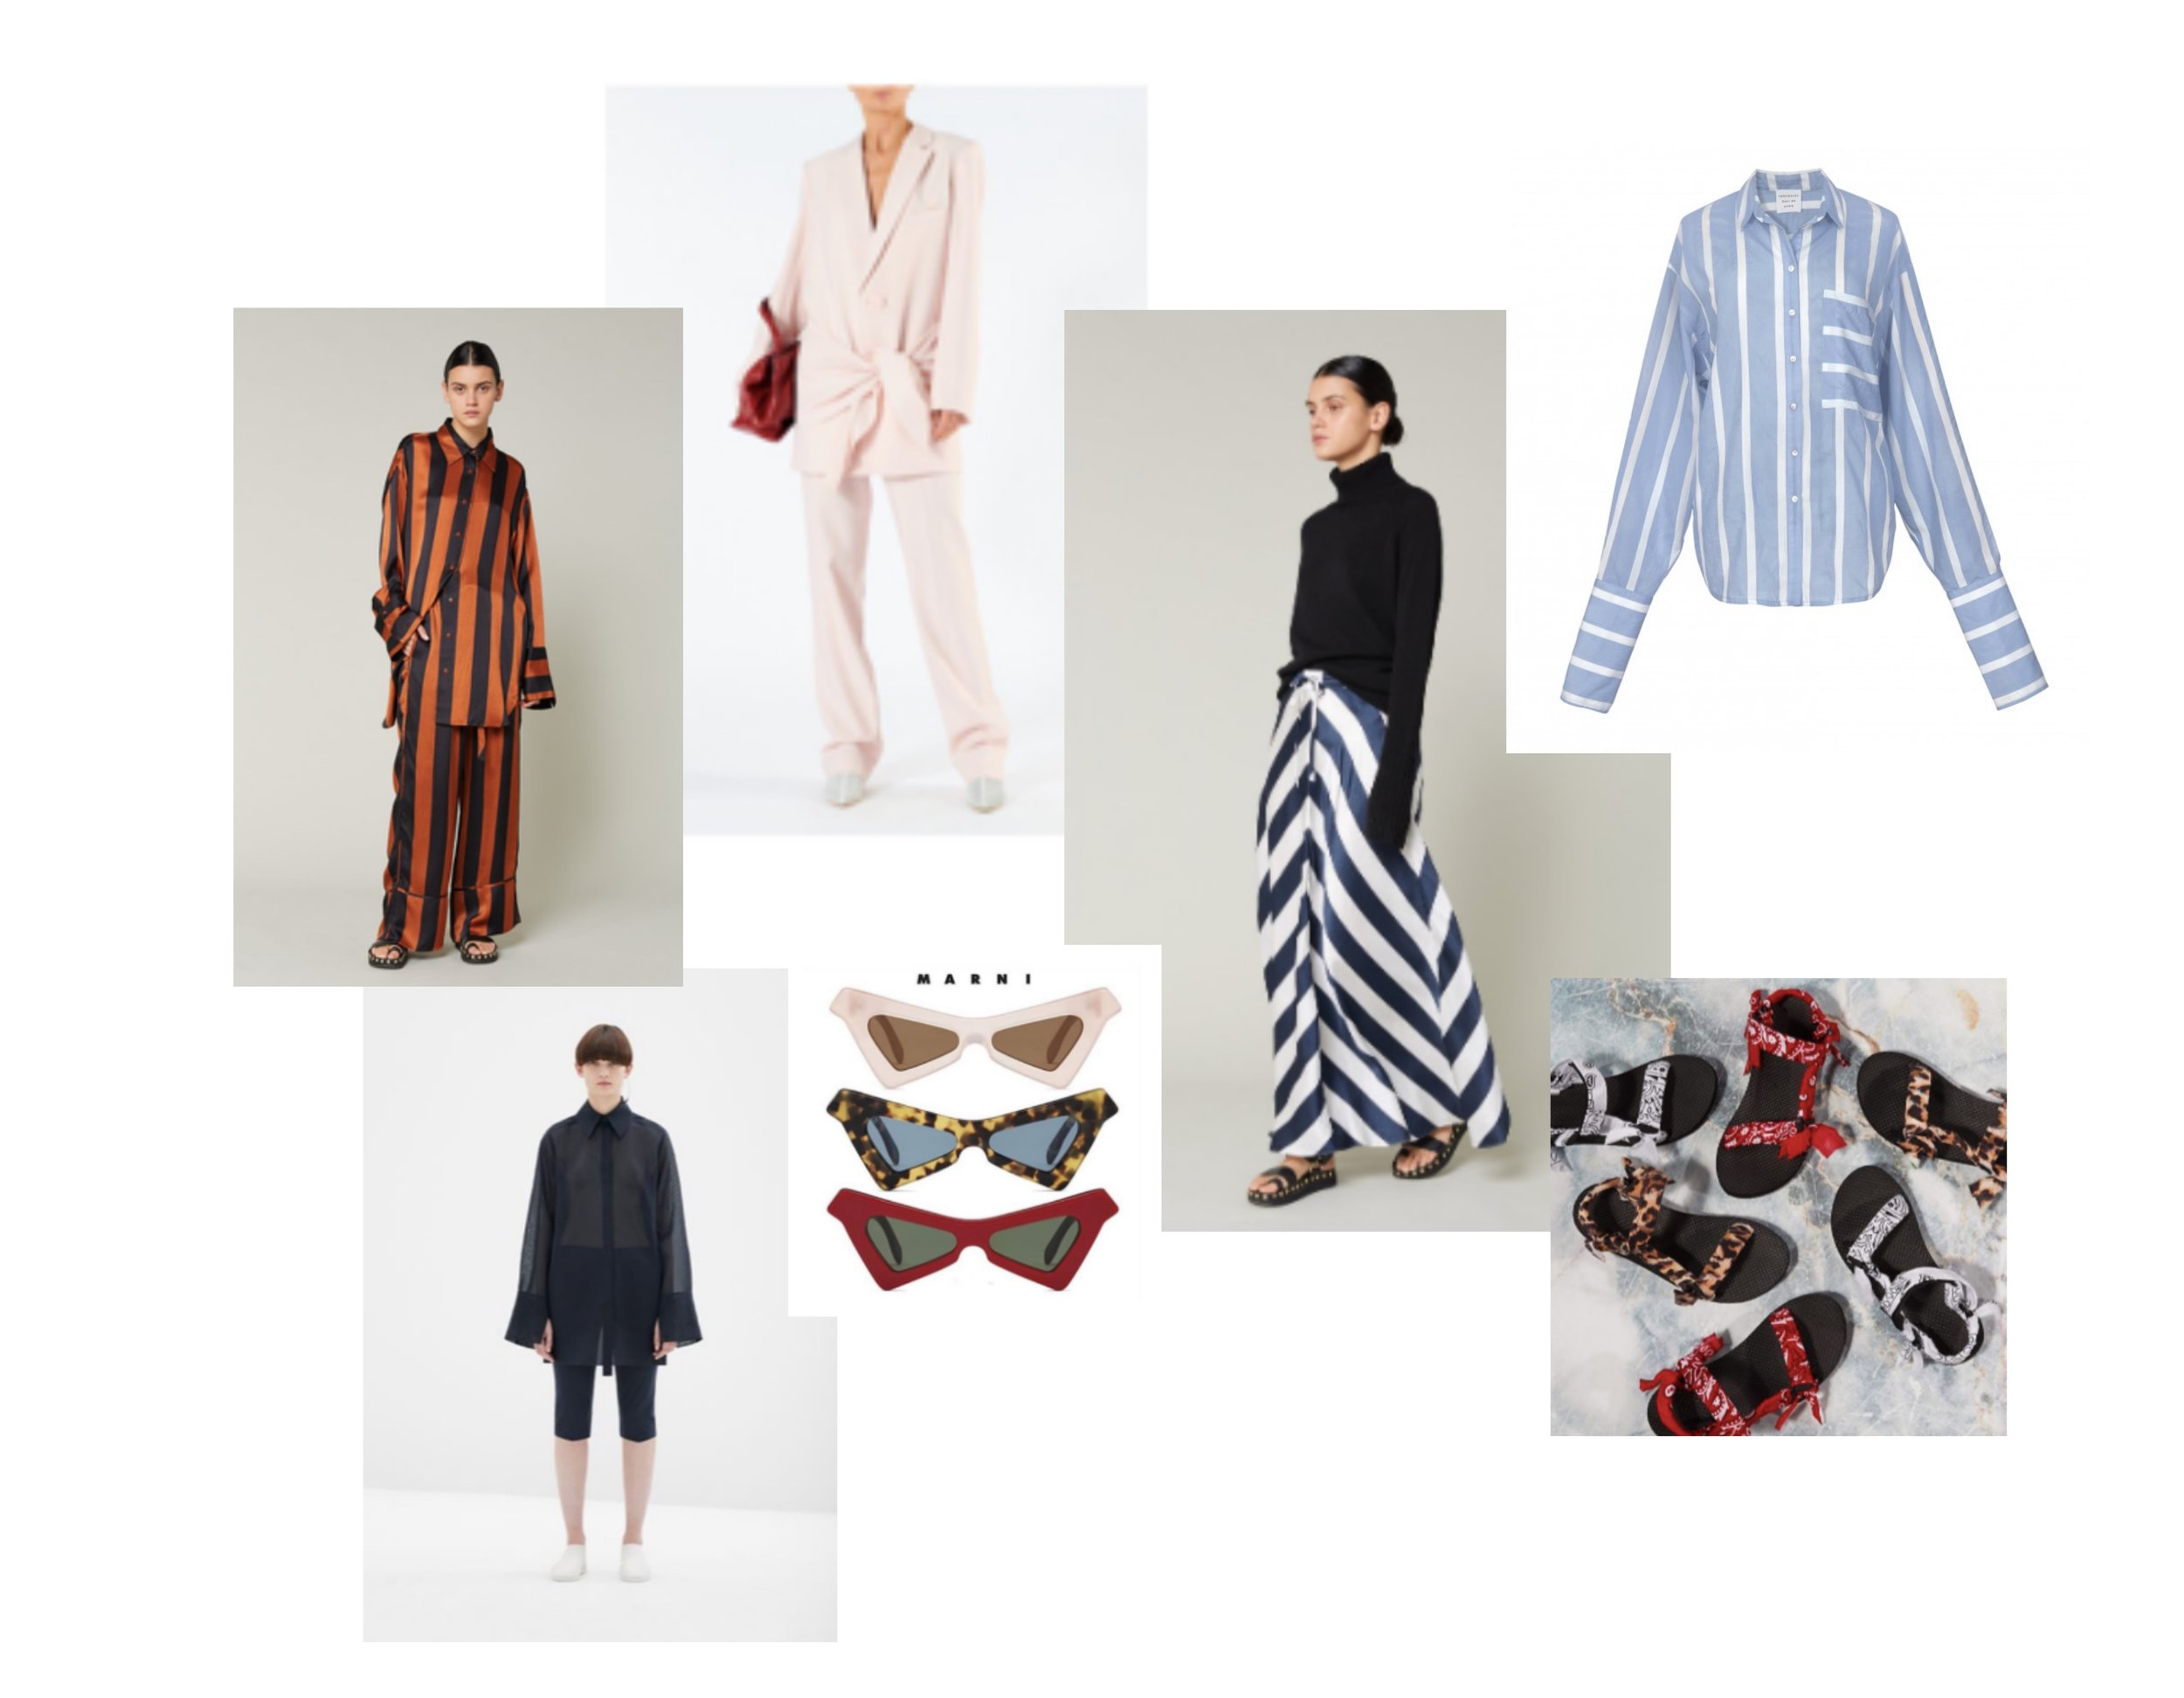 My Summer Edit, clockwise from top: Oversized Shirt and leggings, COS, Coordinates, Lee Mathews, Blazer and Pant, Tibi, black shirt and striped skirt, Lee Mathews, Oversized blouse by Ronnen Chen x MMMWA, Sandals, Arizona LOVE, Sunglasses, Marni #WraptbyChav